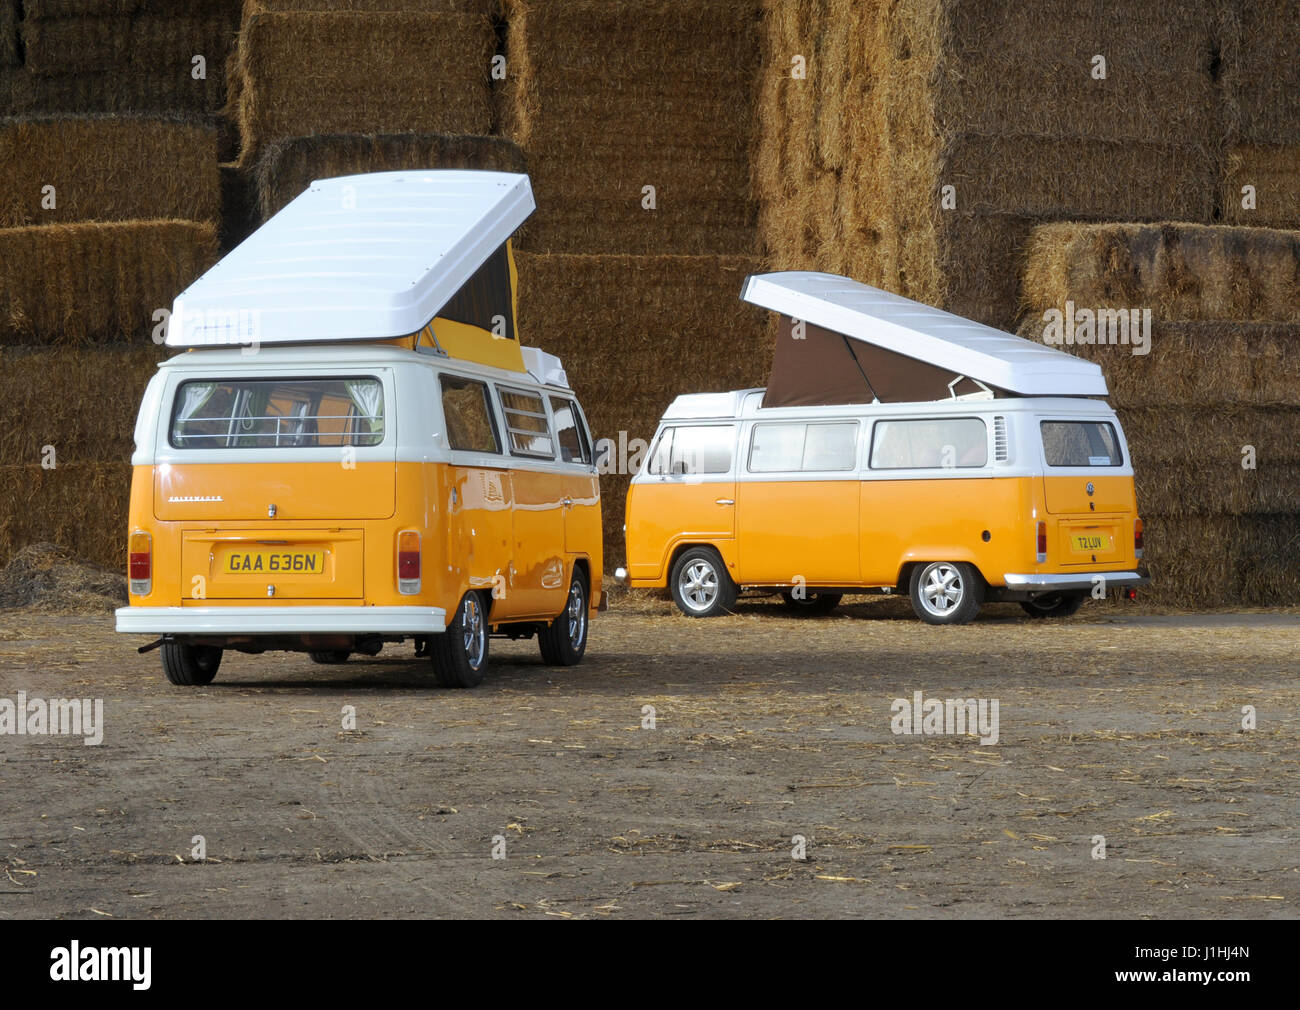 265c94fa87 New Brazilian built water cooled VW camper van with an original 1975 Bay  Window from Germany